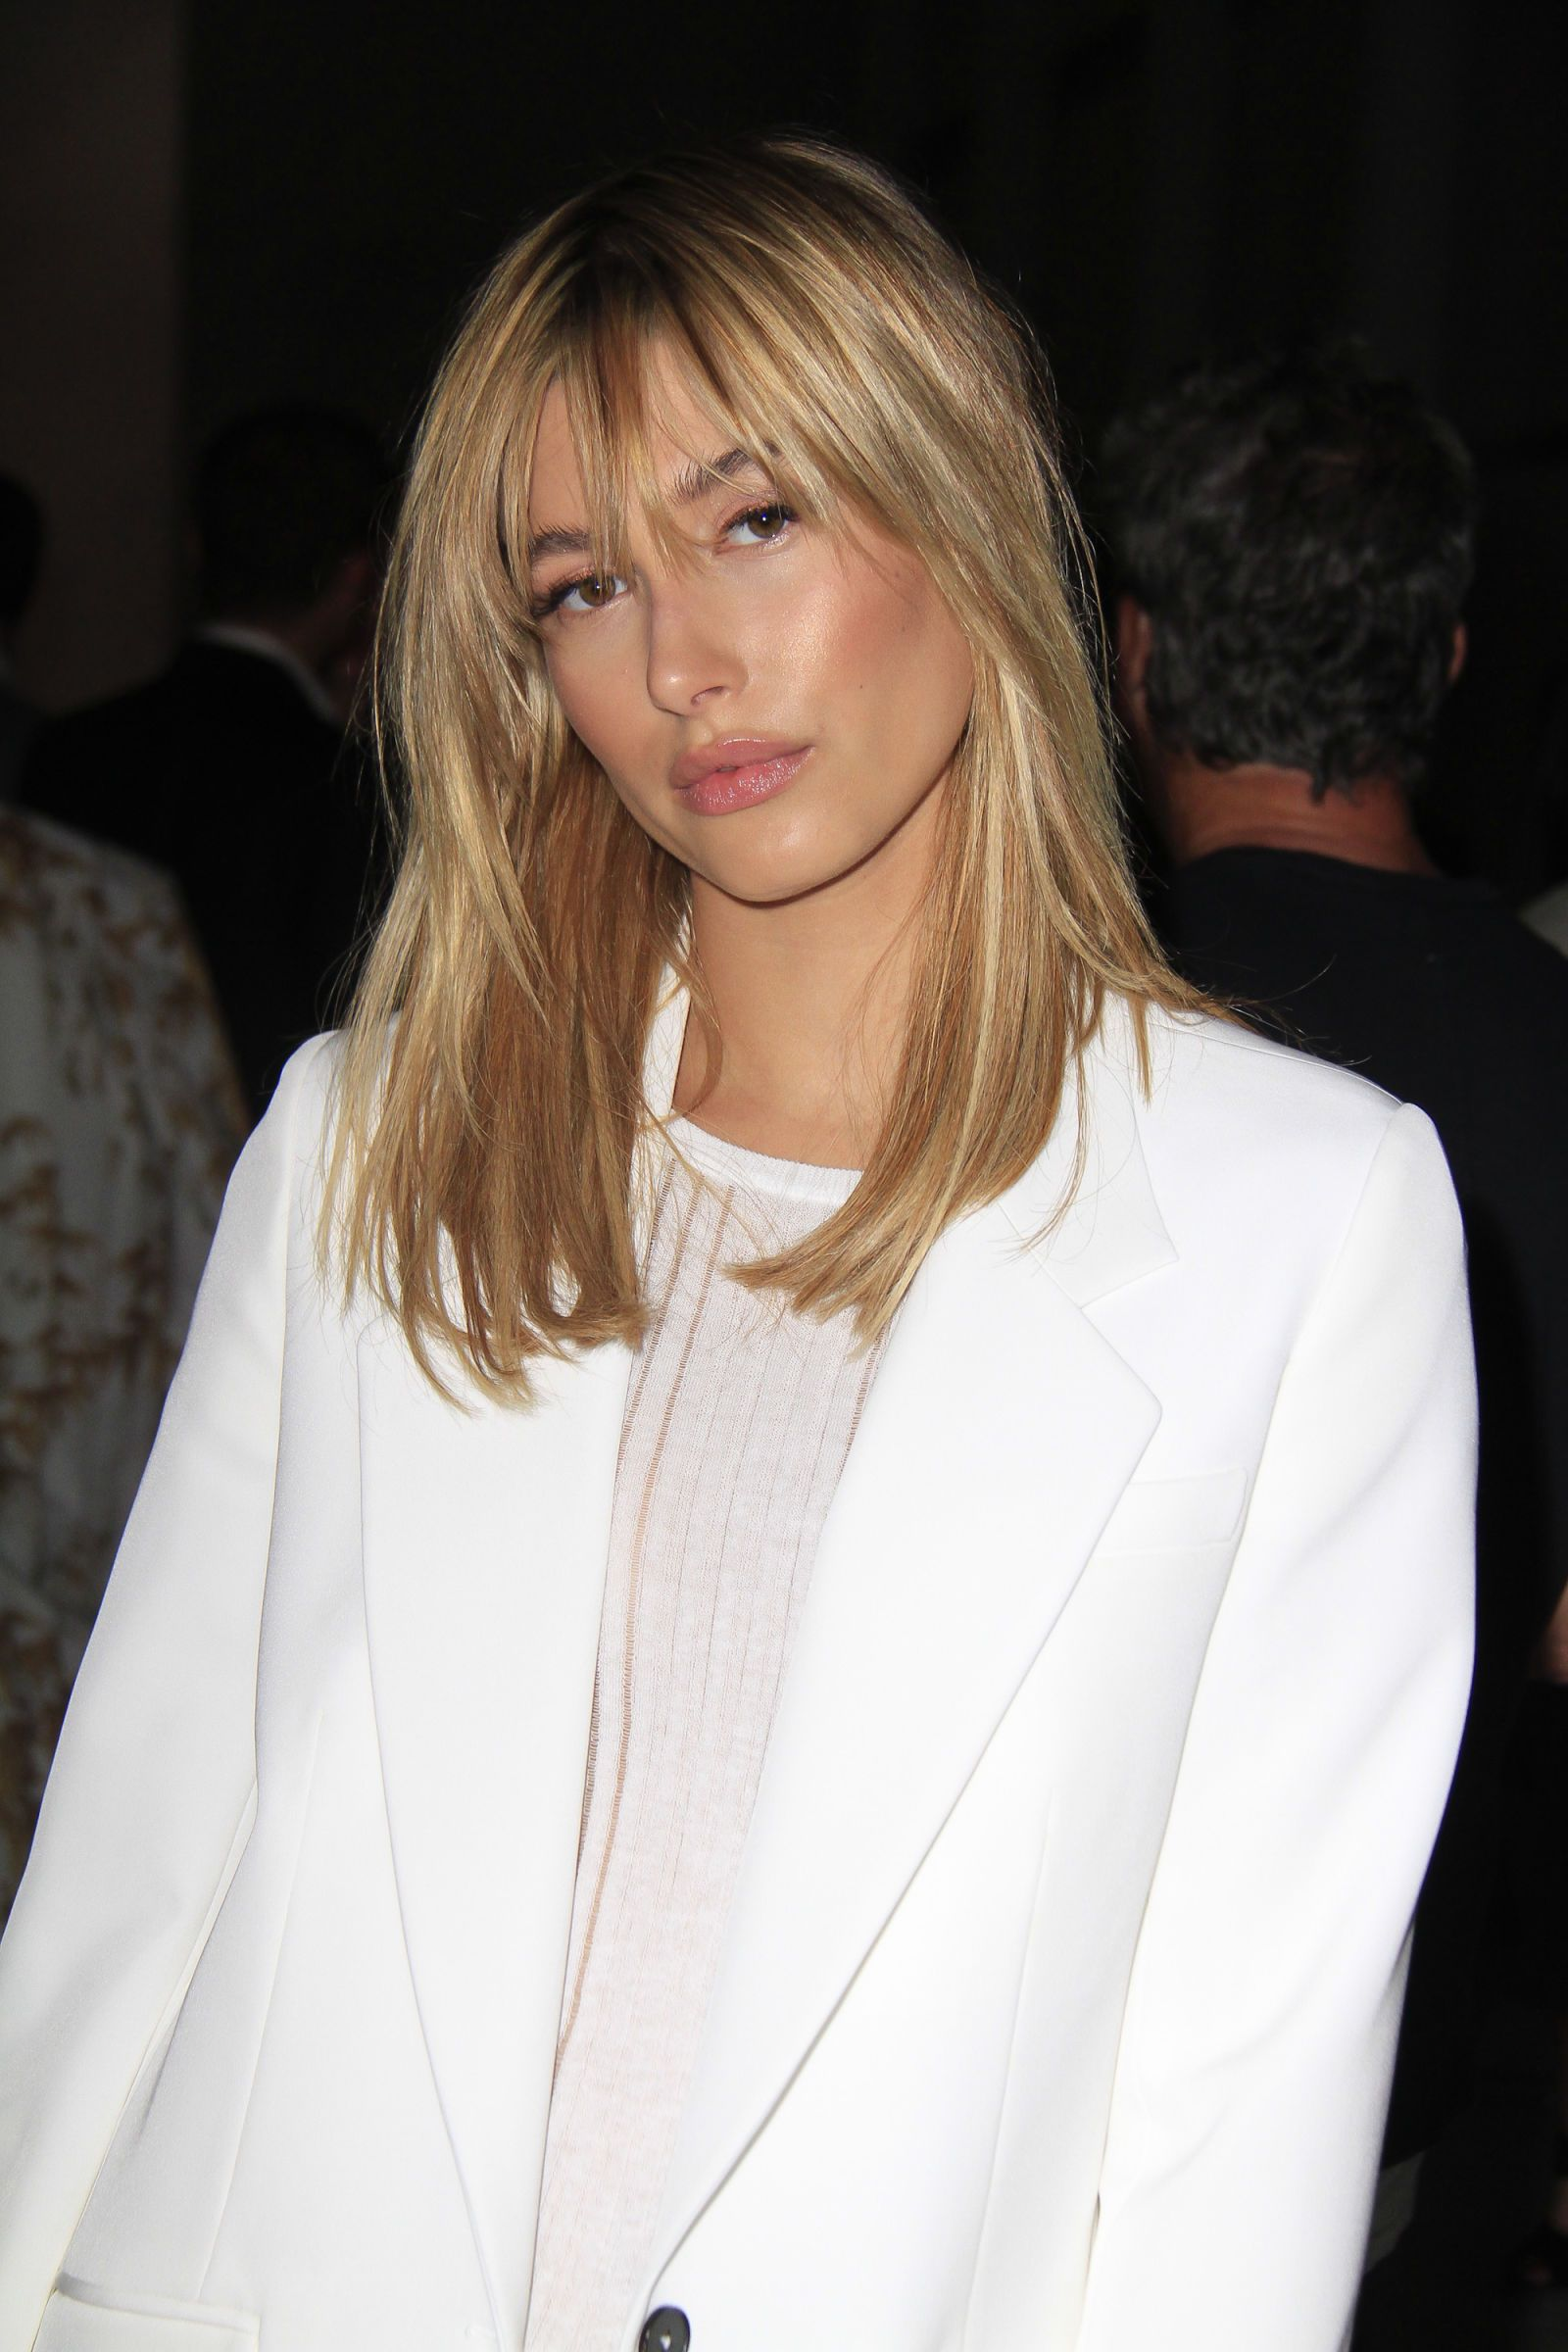 mediumlength hairstyles to steal from celebs people by elyse